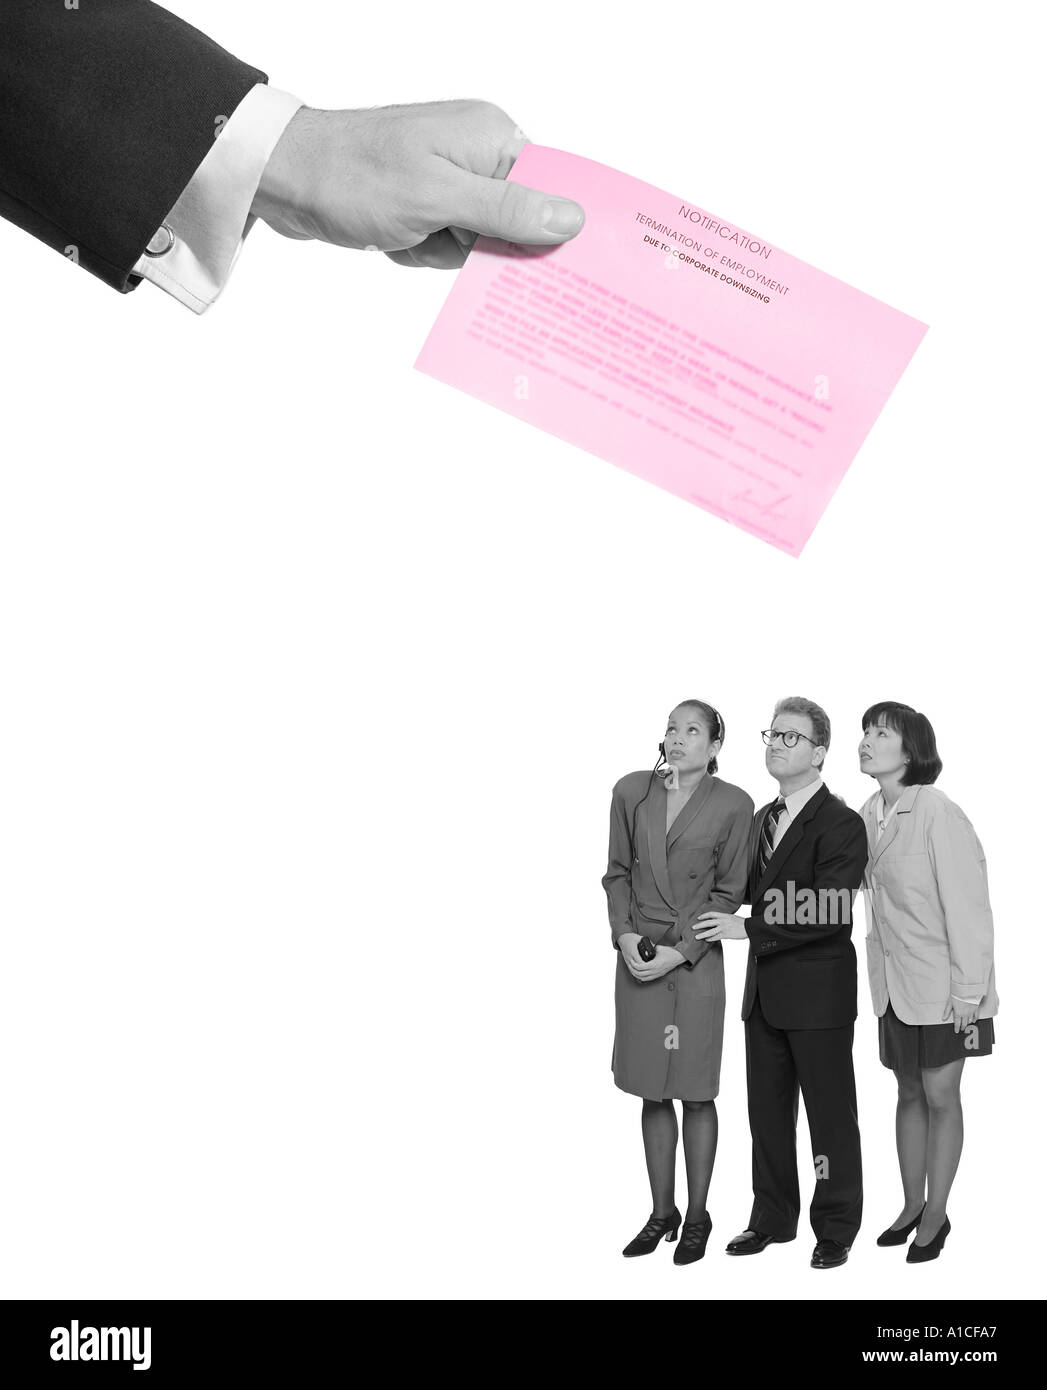 Giant hand delivering pink slip to workers - Stock Image